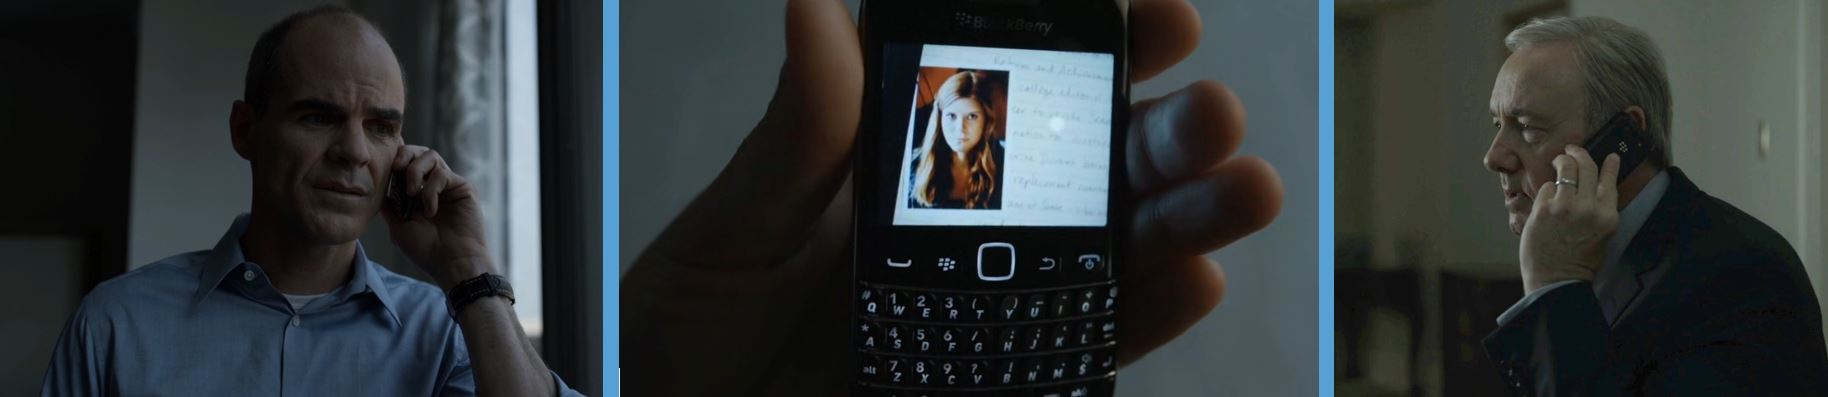 blackberry handsets phone mobile phones in house of cards season 4